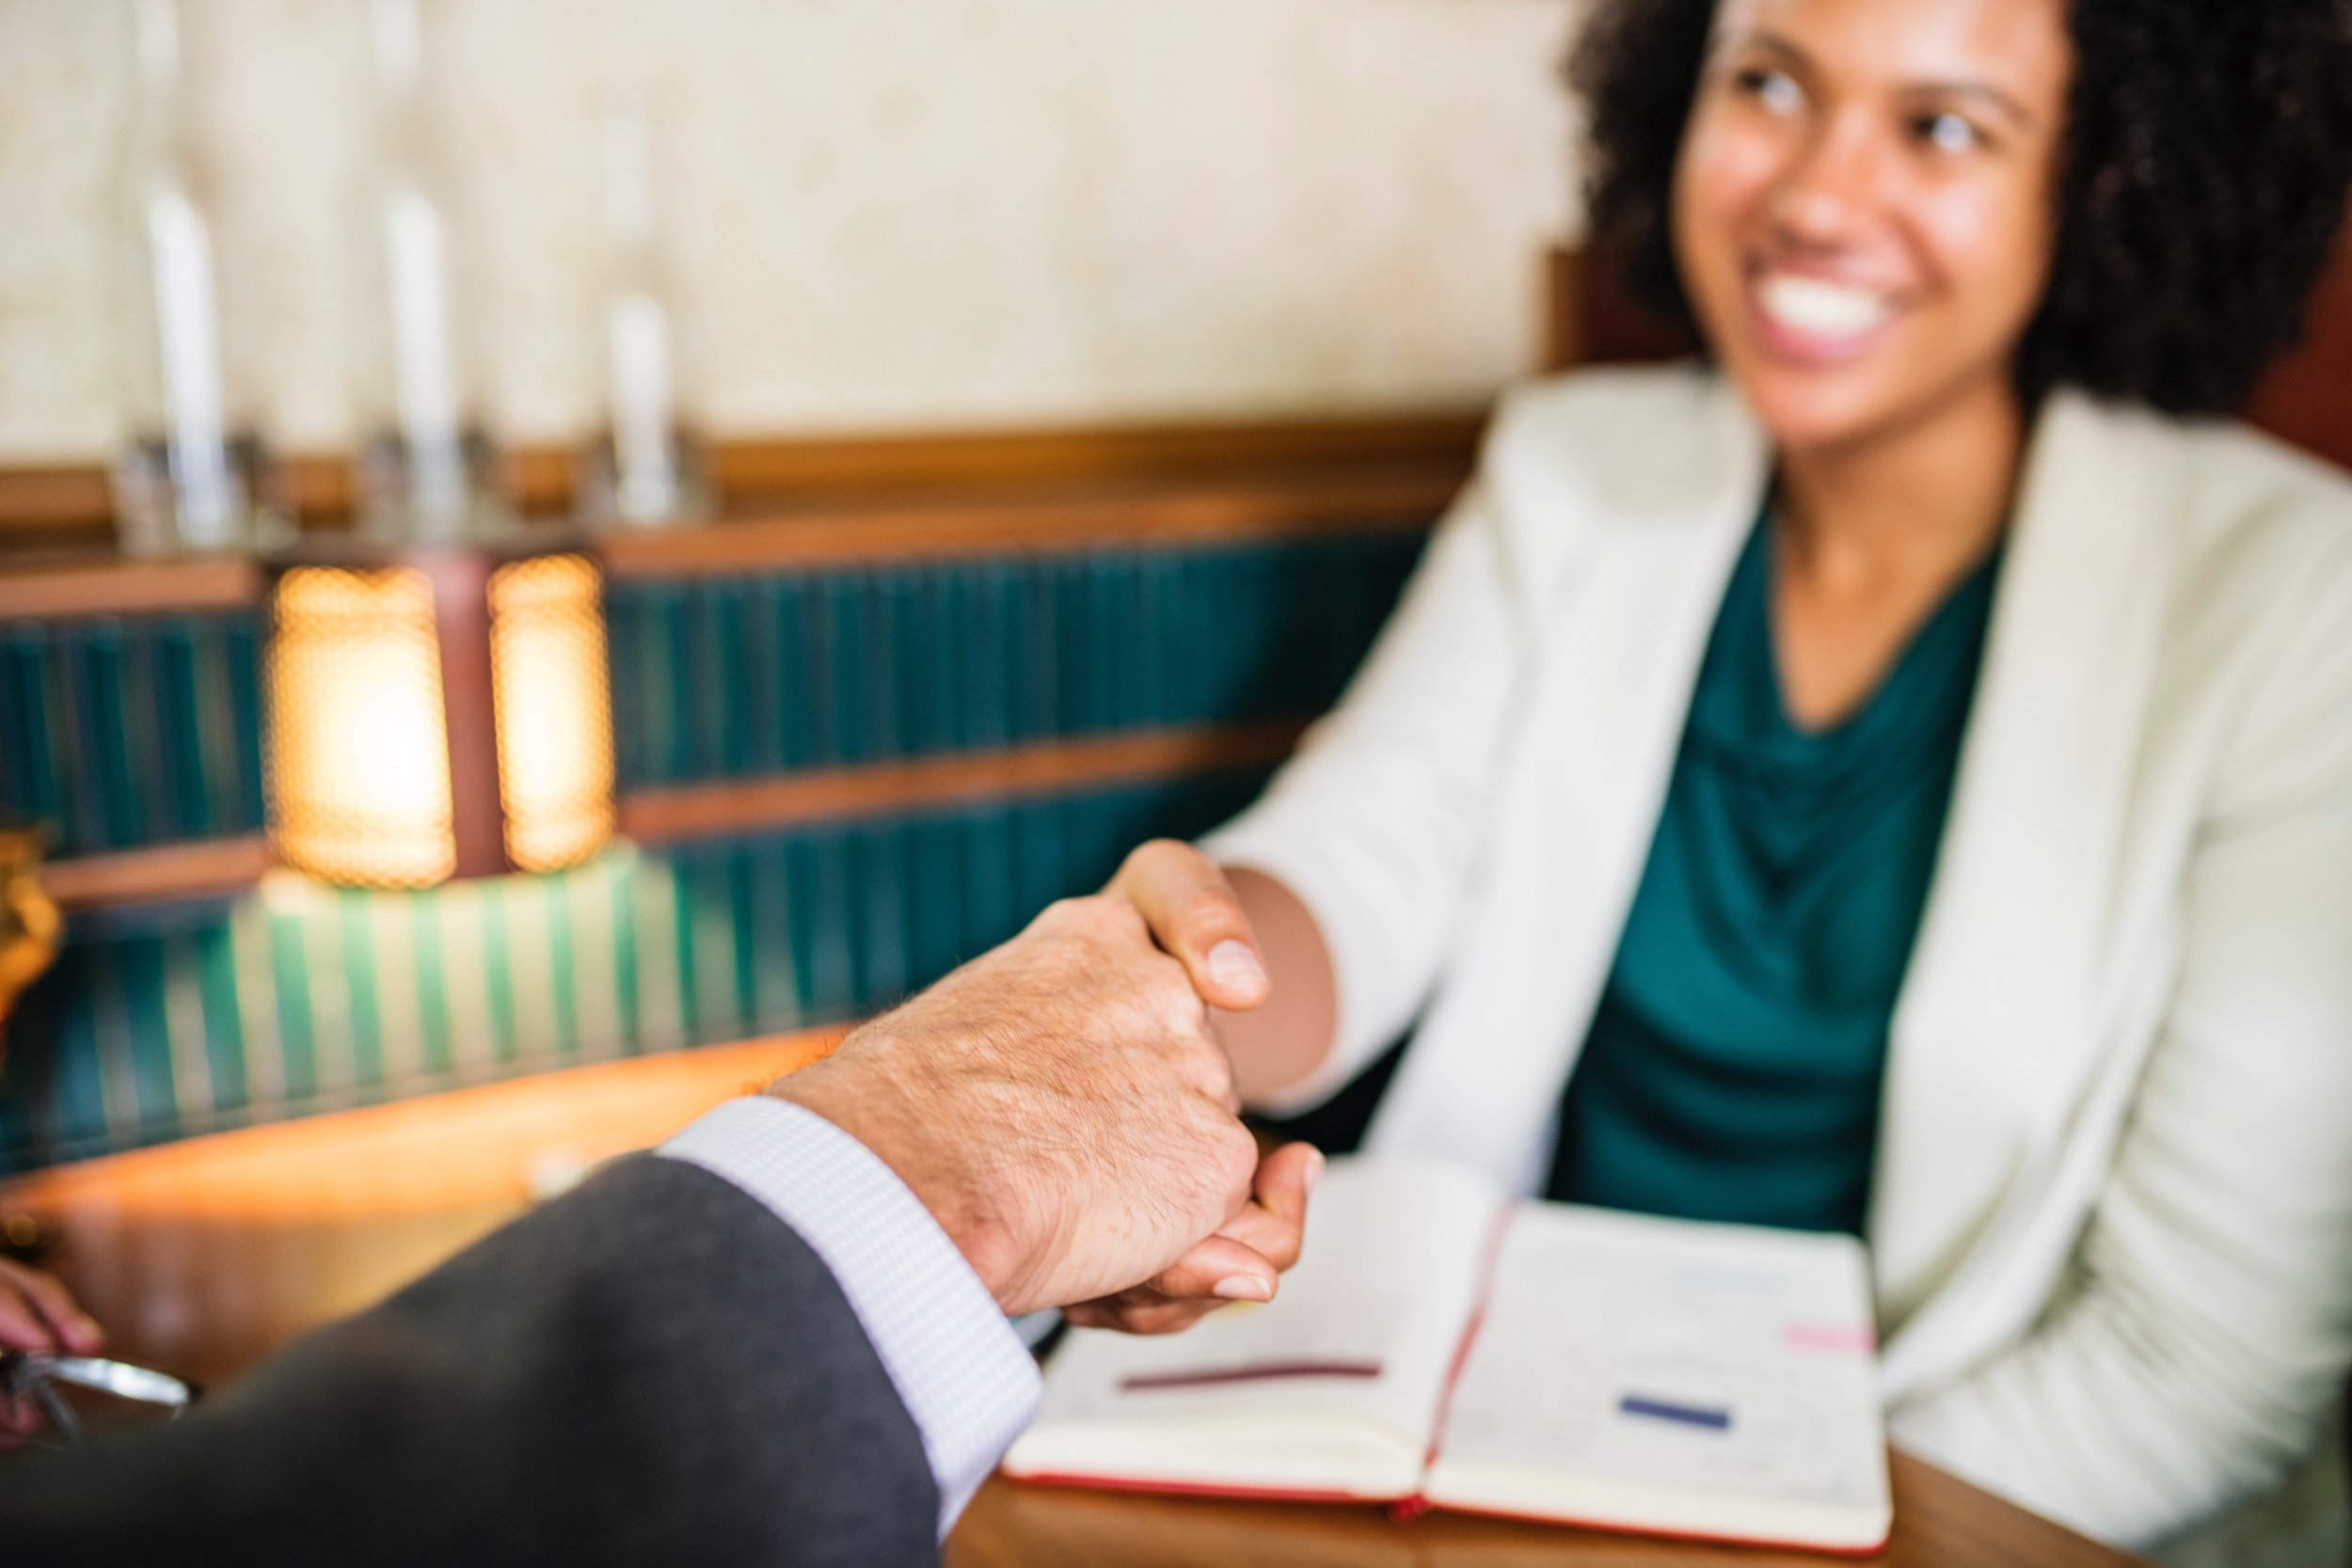 partnership - You're not just a client at Dunne Goodwin. We believe in partnering with you and getting to know you, so we can build a long term relationship together on your terms.